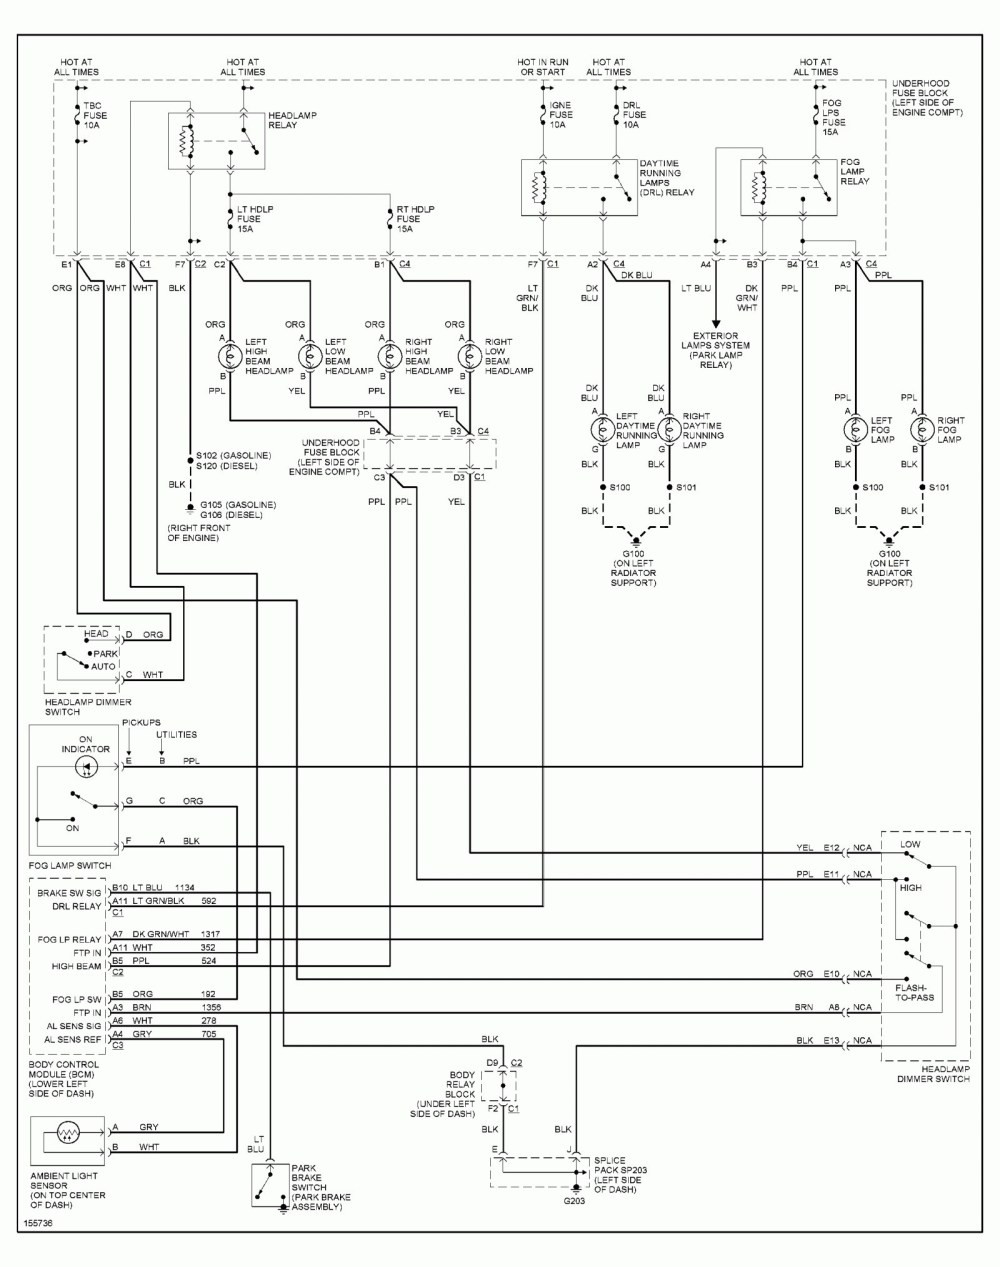 medium resolution of meyer plow wiring diagram meyer snow plow wiring diagram beautifulmeyer plow wiring diagram meyer snow plow